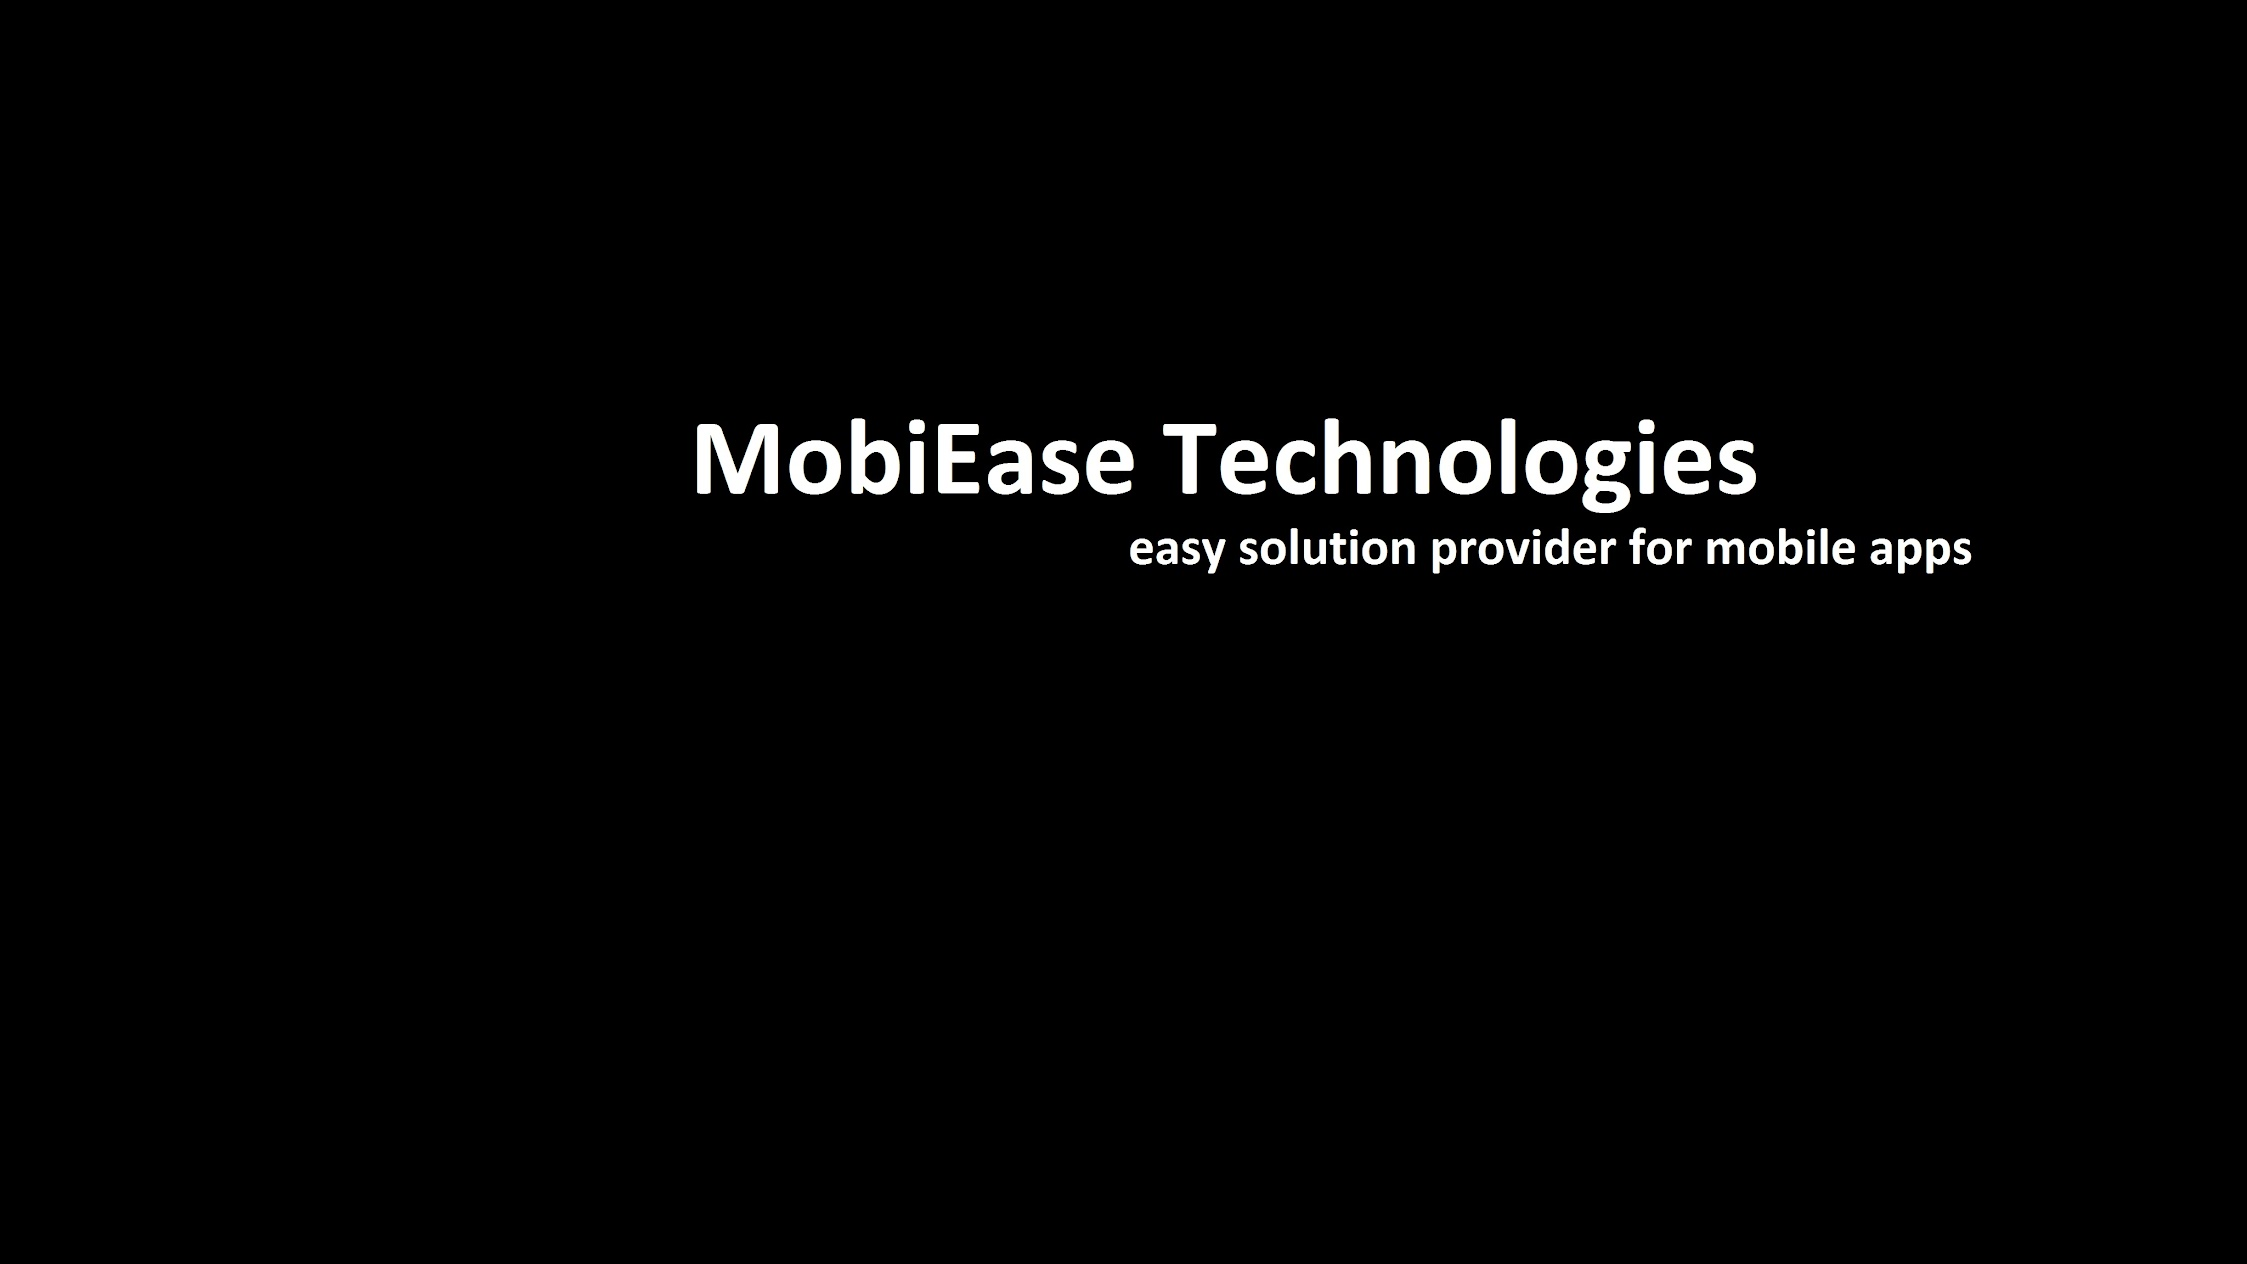 MobiEase Technologies